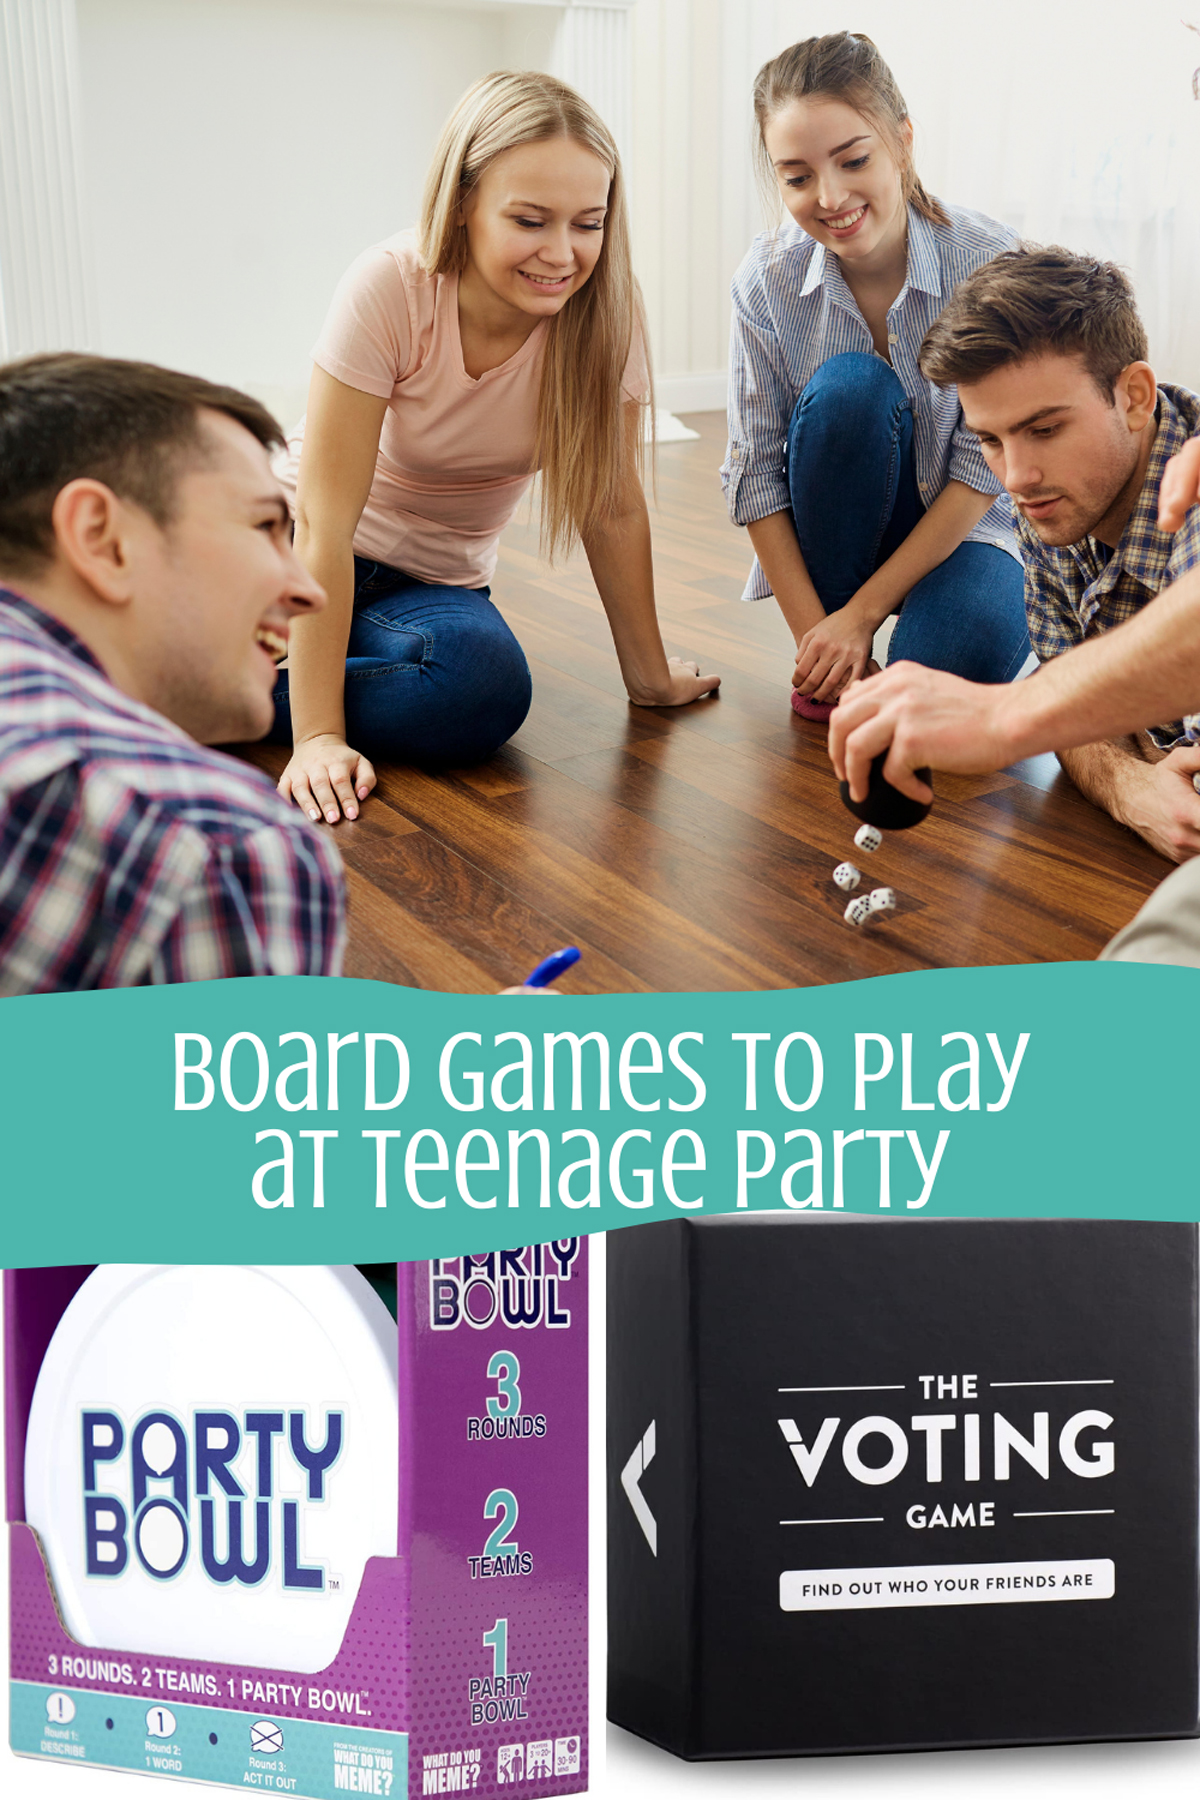 Games to Play at Teenage Party